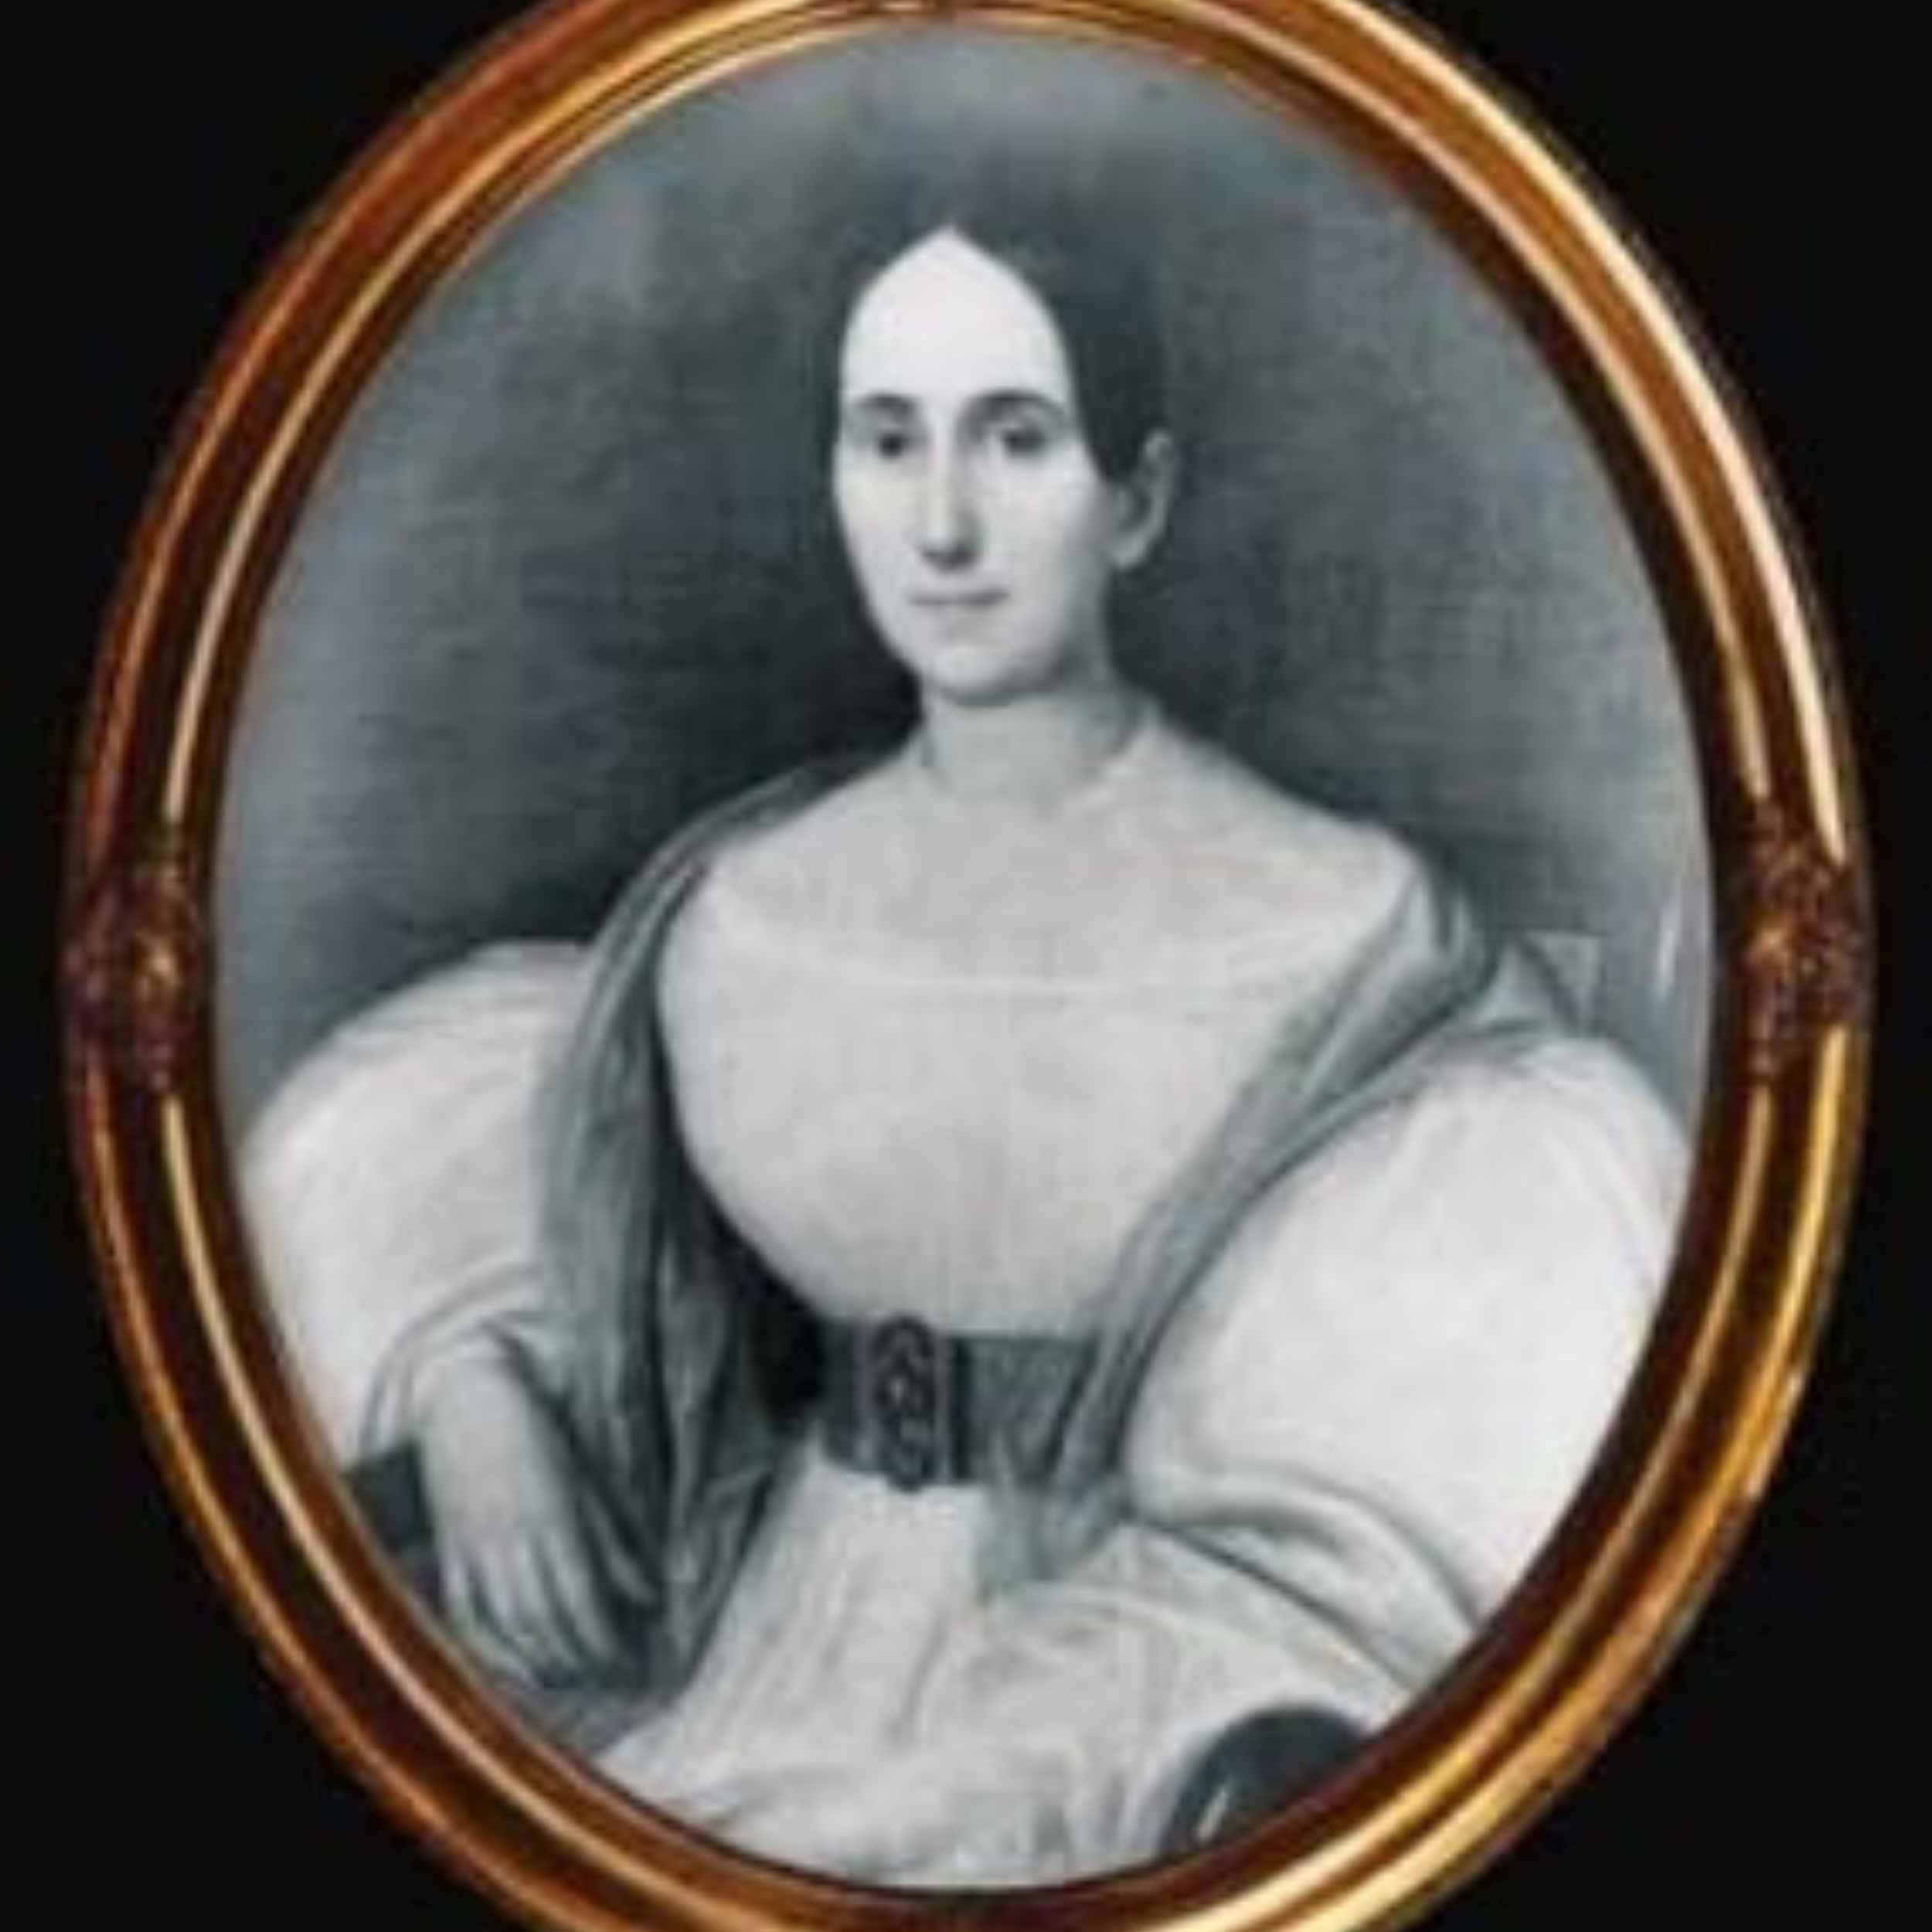 Mme. Delphine LaLaurie